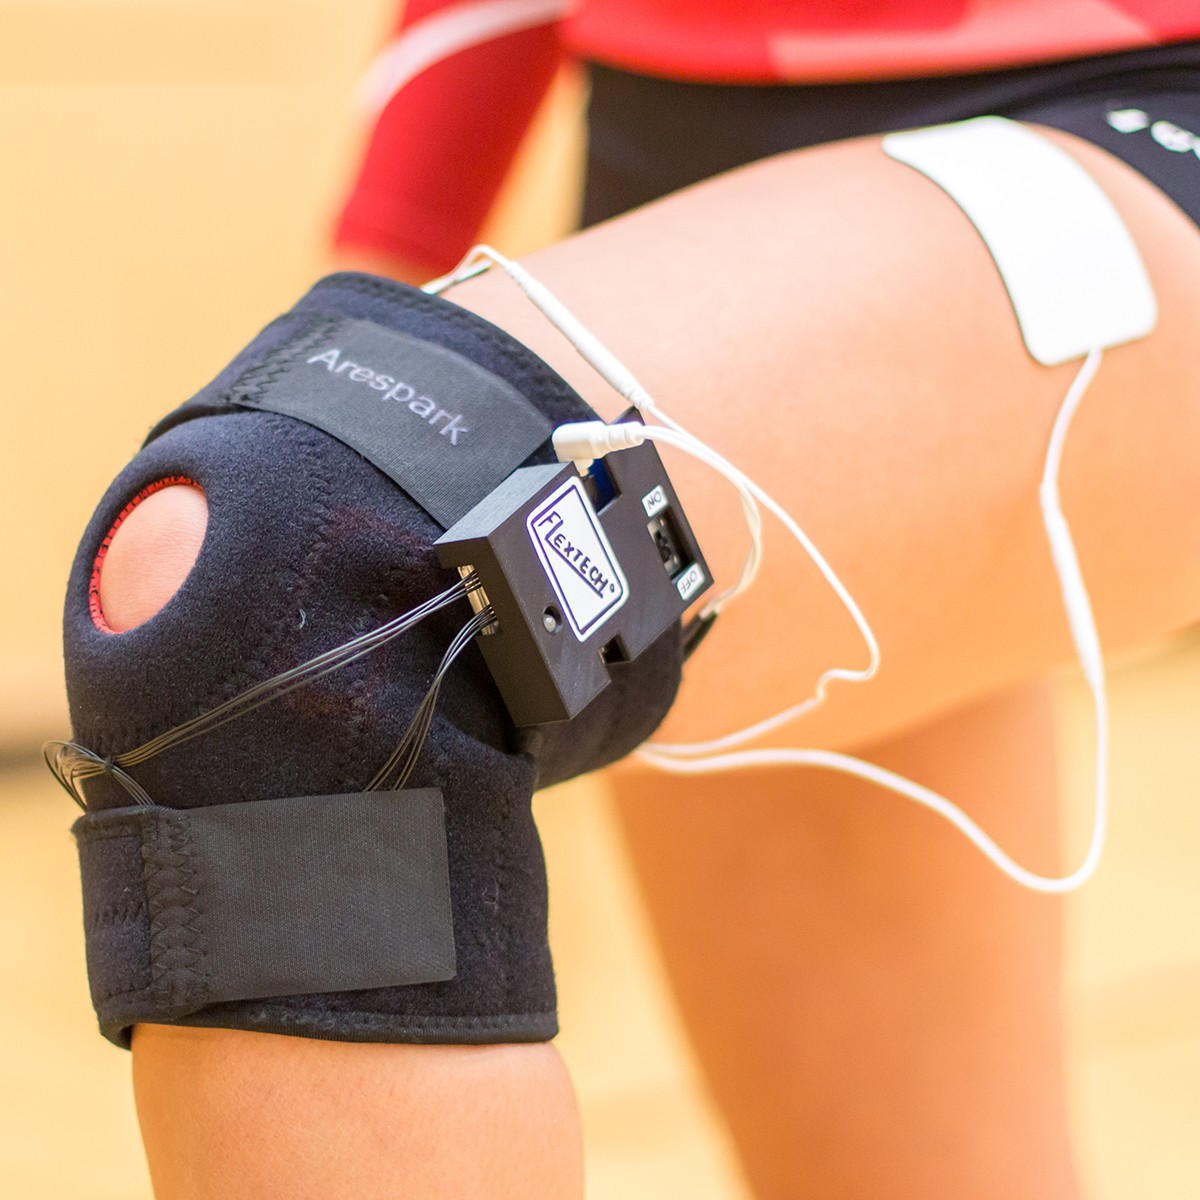 A knee brace with smart electronic attachments